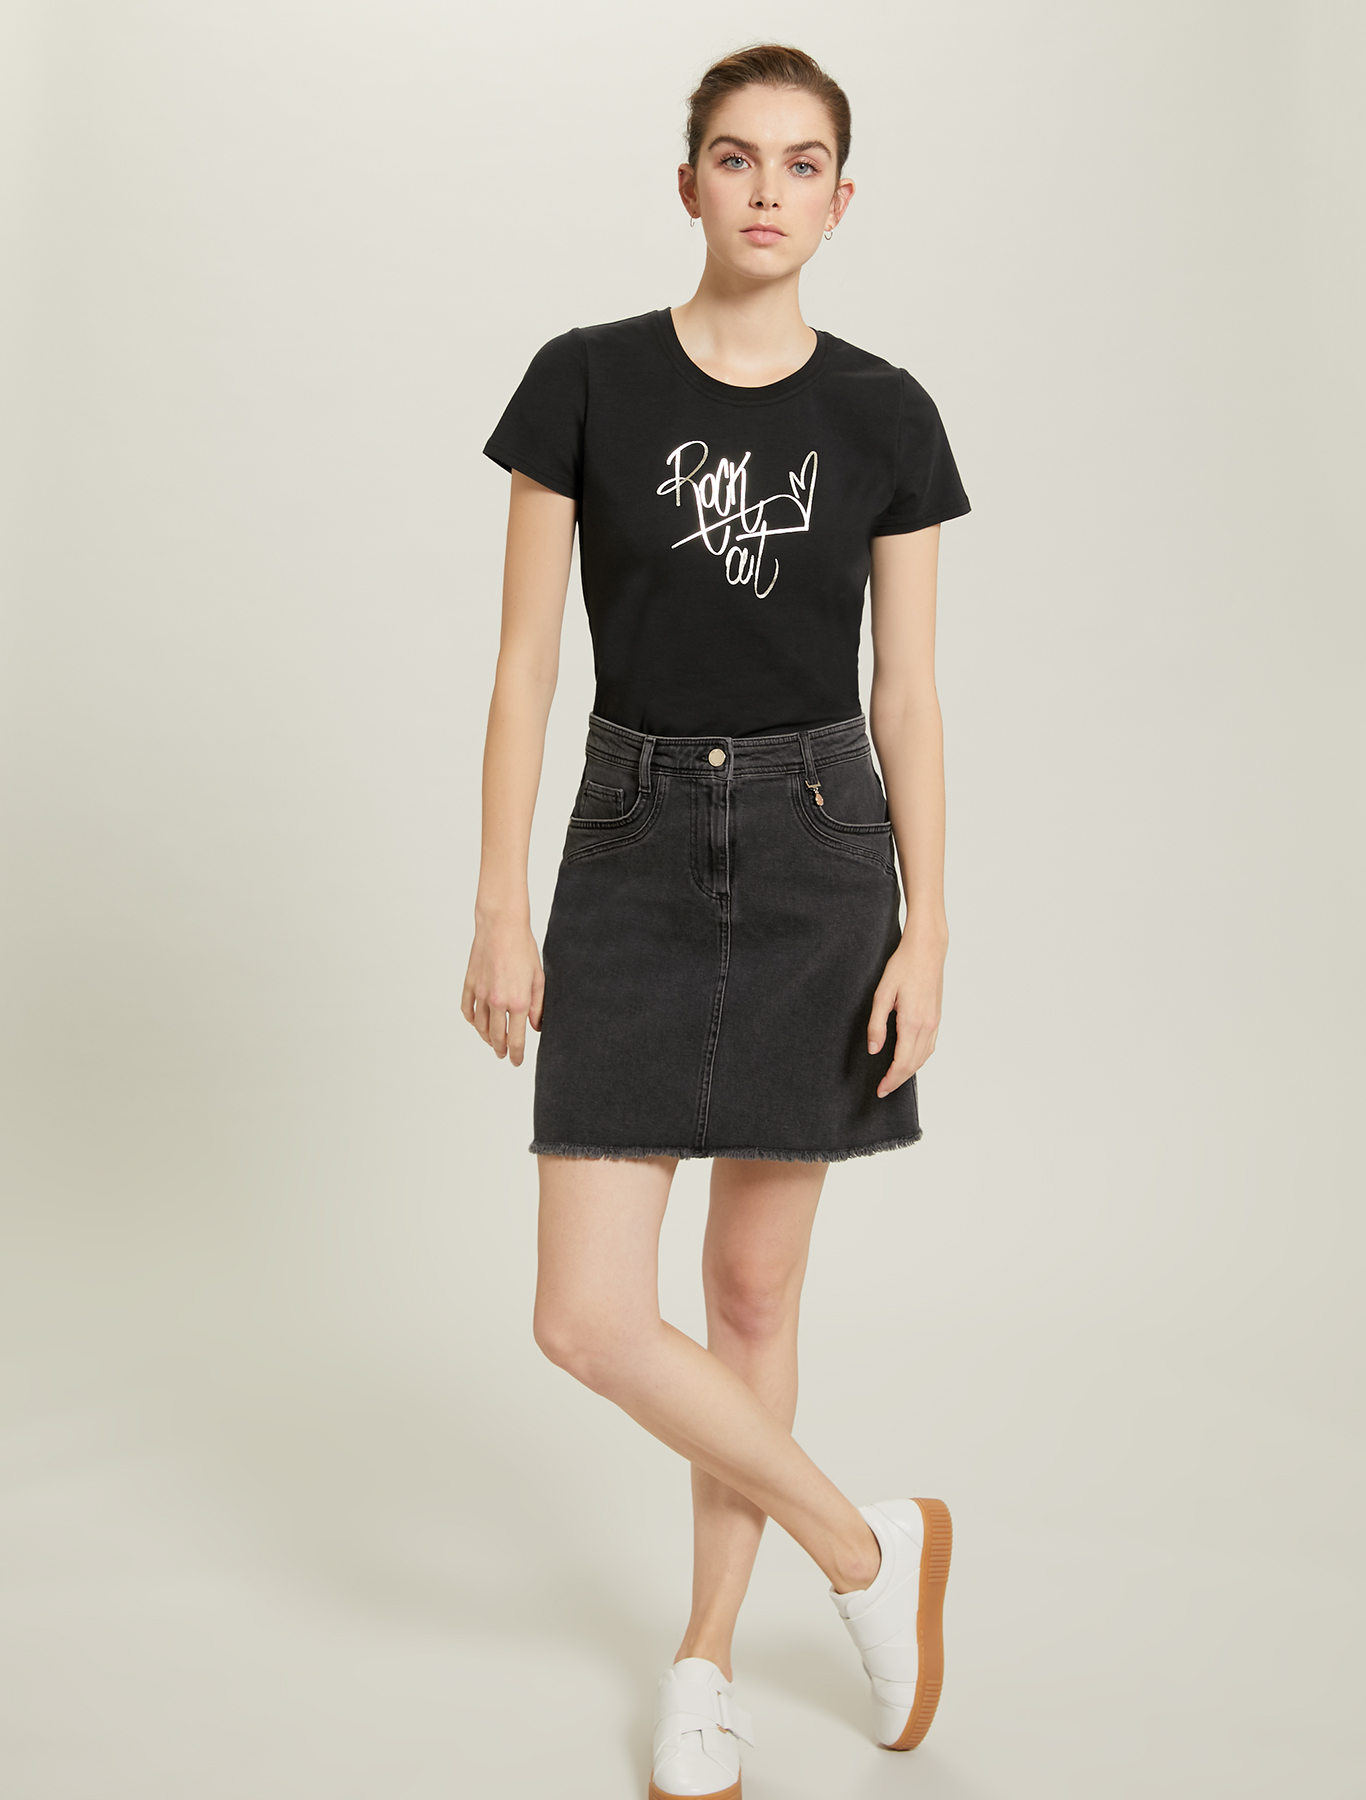 Printed cotton T-shirt - black - pennyblack